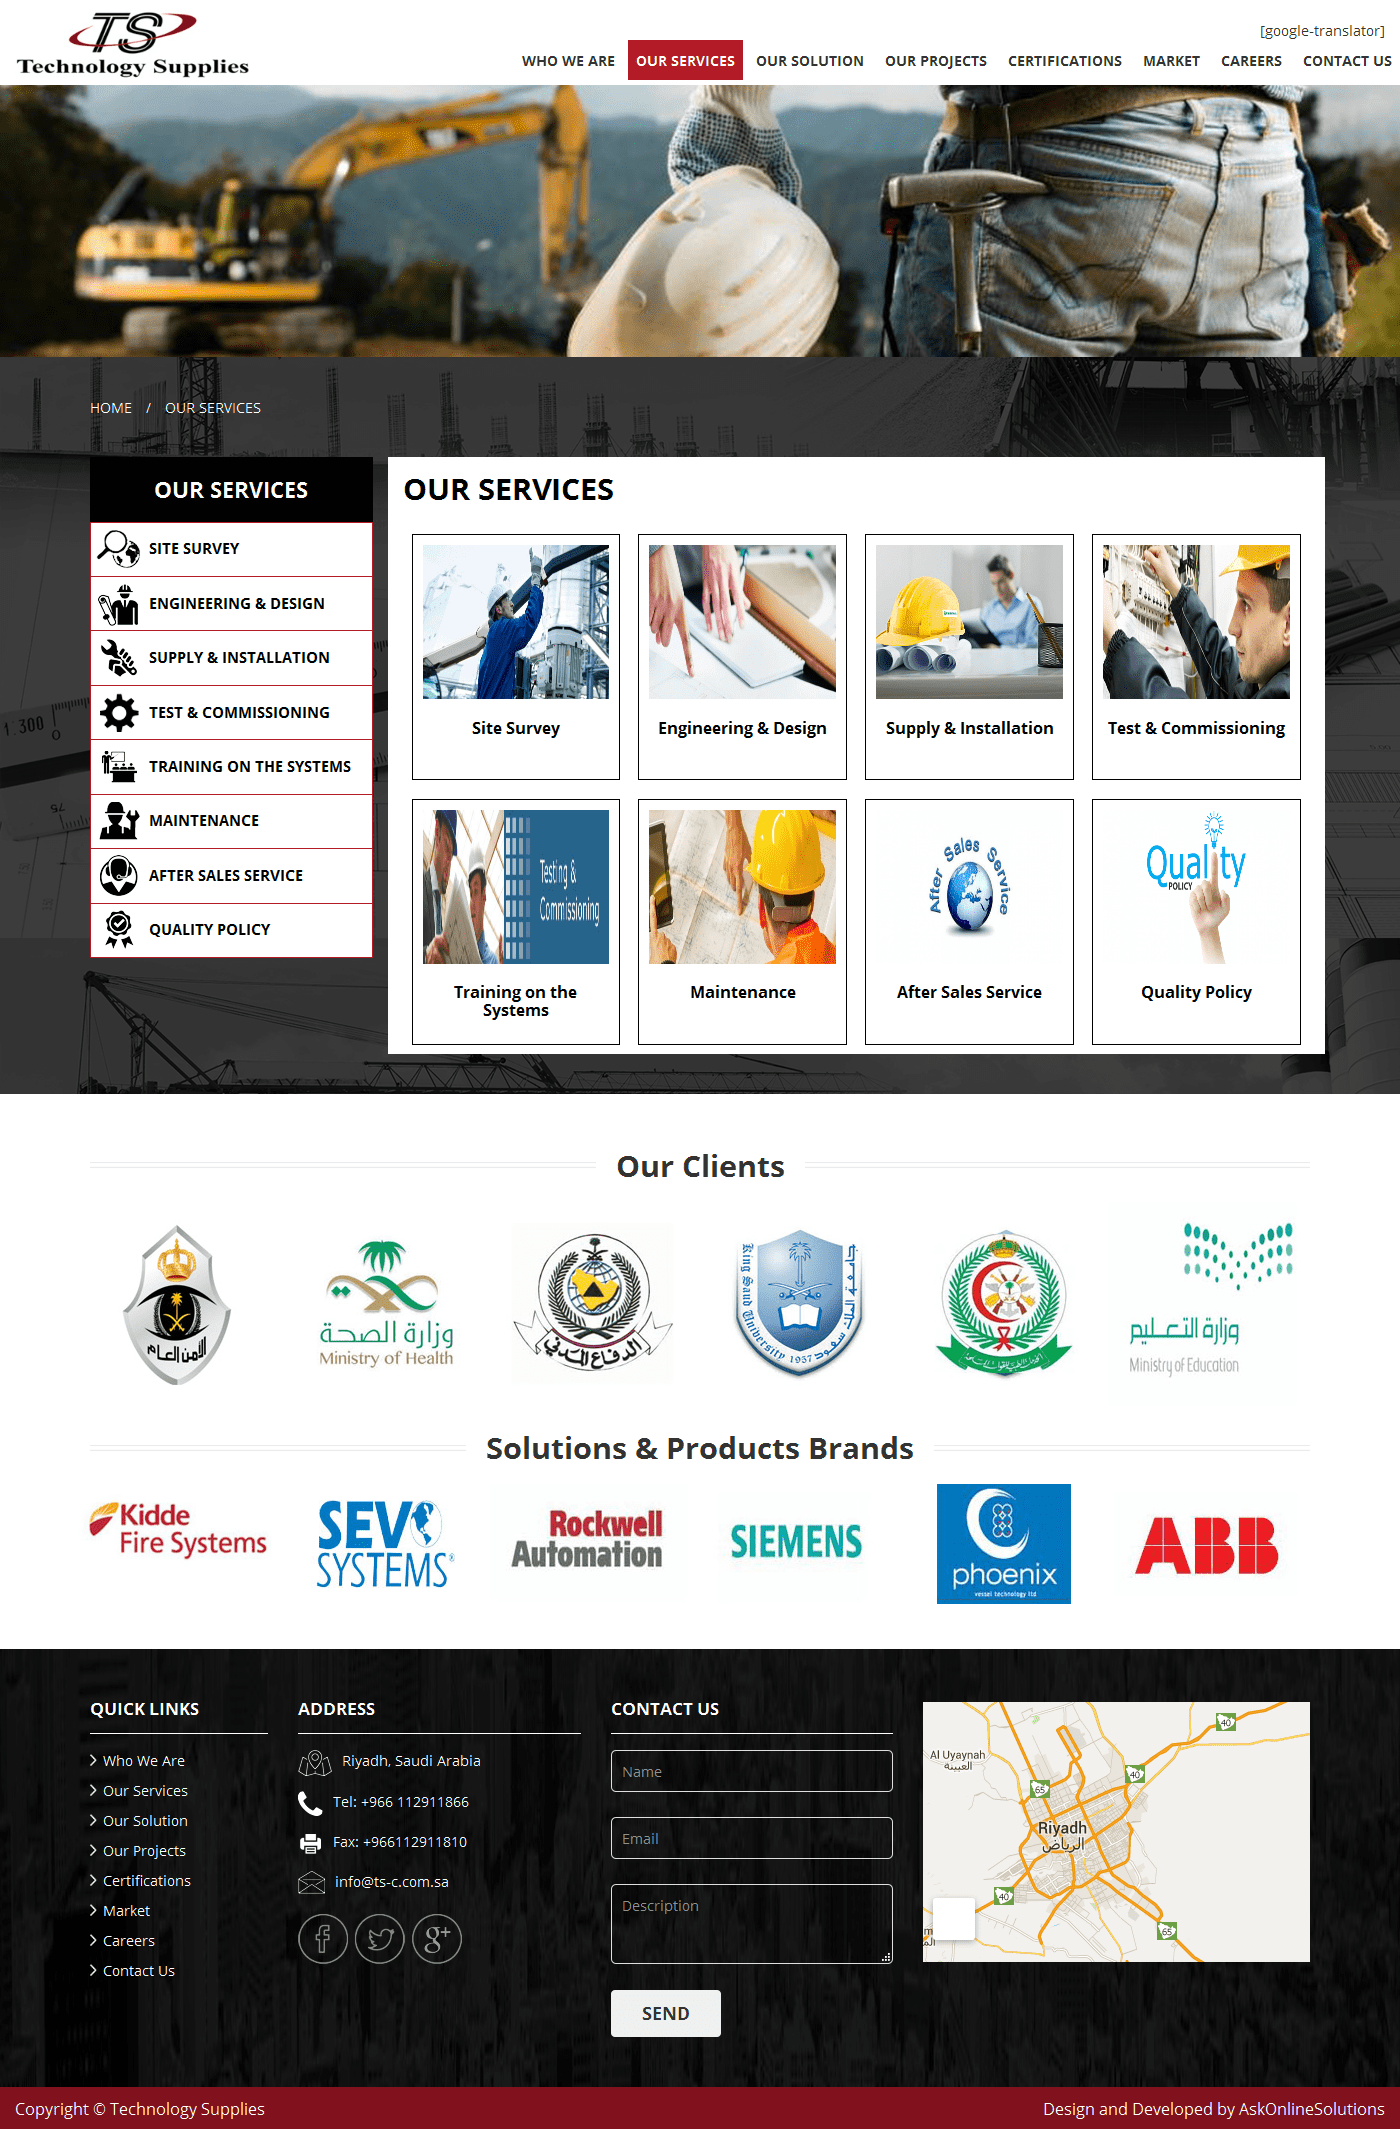 Ask Online Solutions Portfolio TS Services